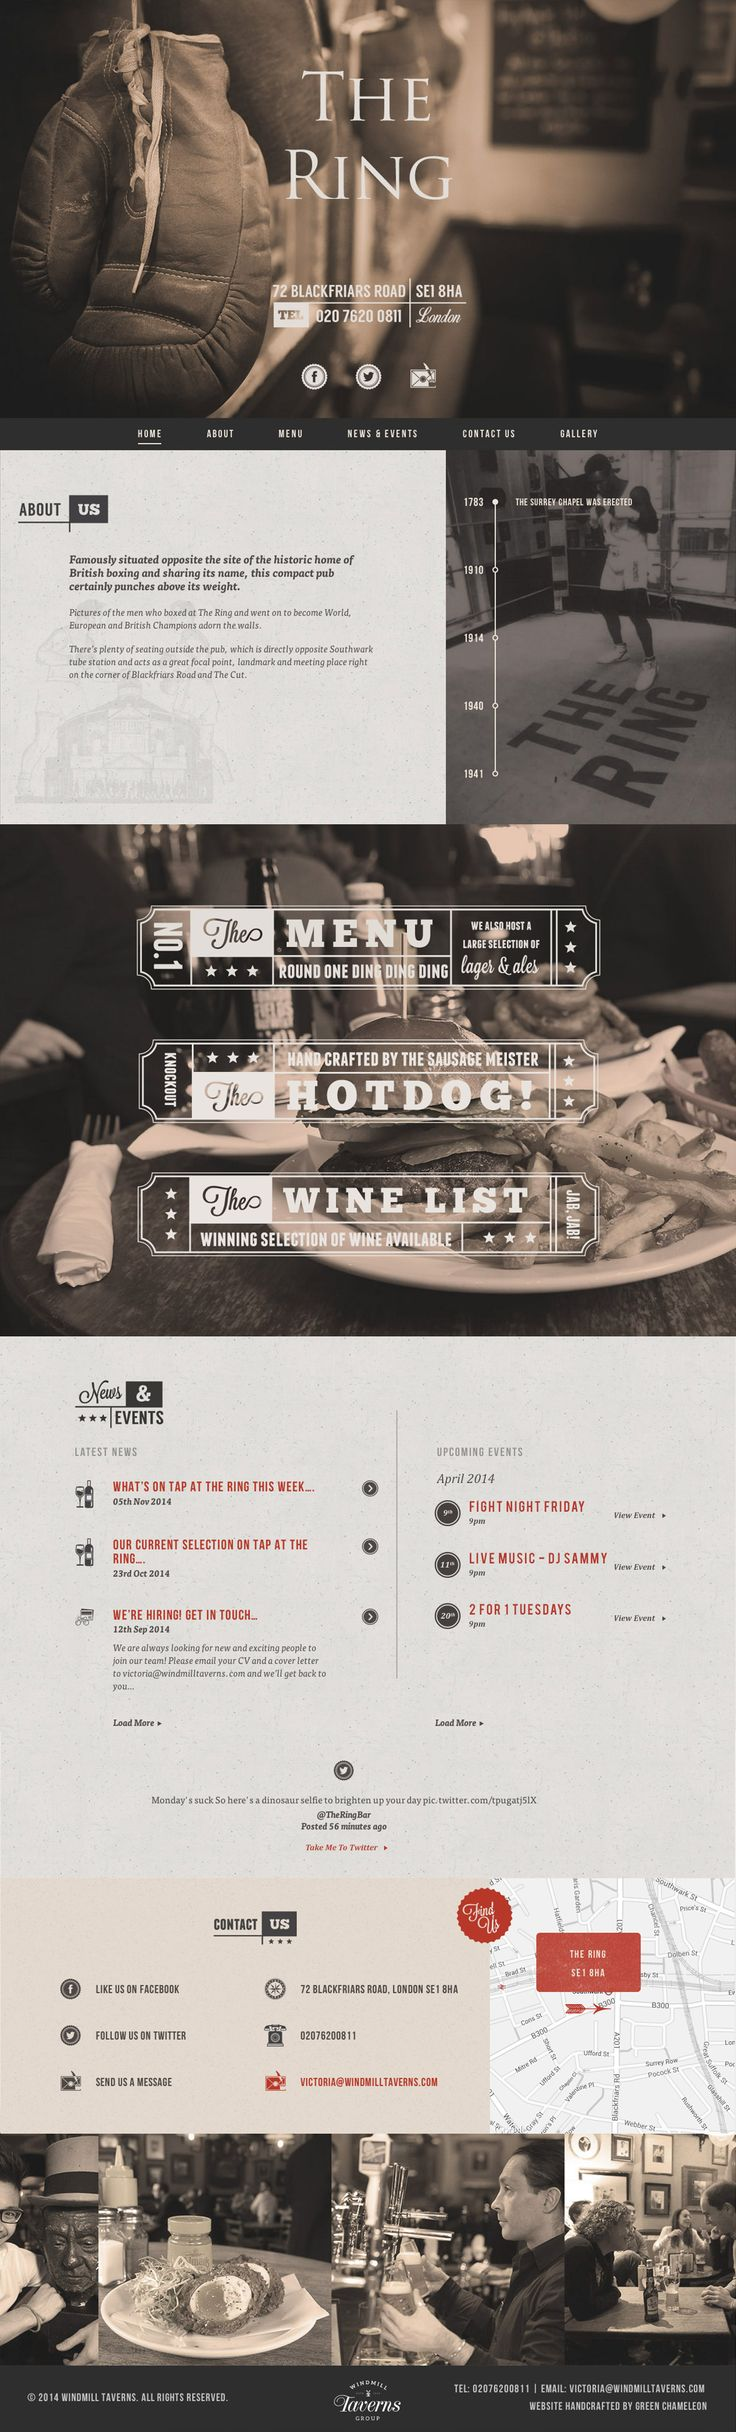 Responsive One Pager for 'The Ring Pub' based in London. The design features a lovely sepia color scheme and a good choice of typography against a subtle textured background. Lovely added effort with the custom icon set and also the AJAX loading Menu that is consistent with the site design. Nice to see a South African wine there;) Another great addition to the impressive arsenal of Green Chameleon.